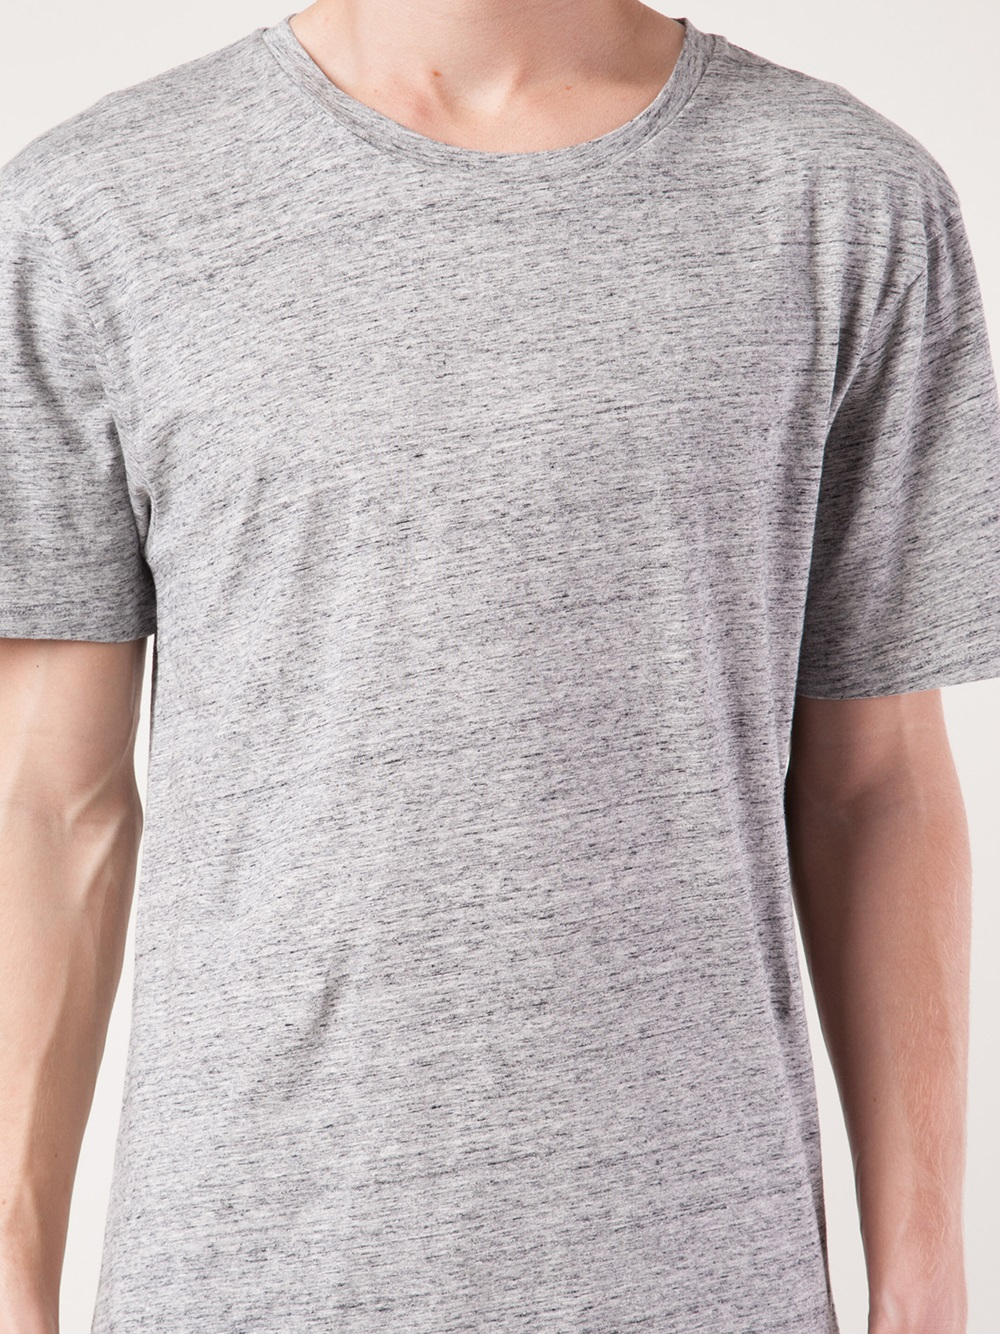 lyst maison kitsun uni slub knit tshirt in gray for men